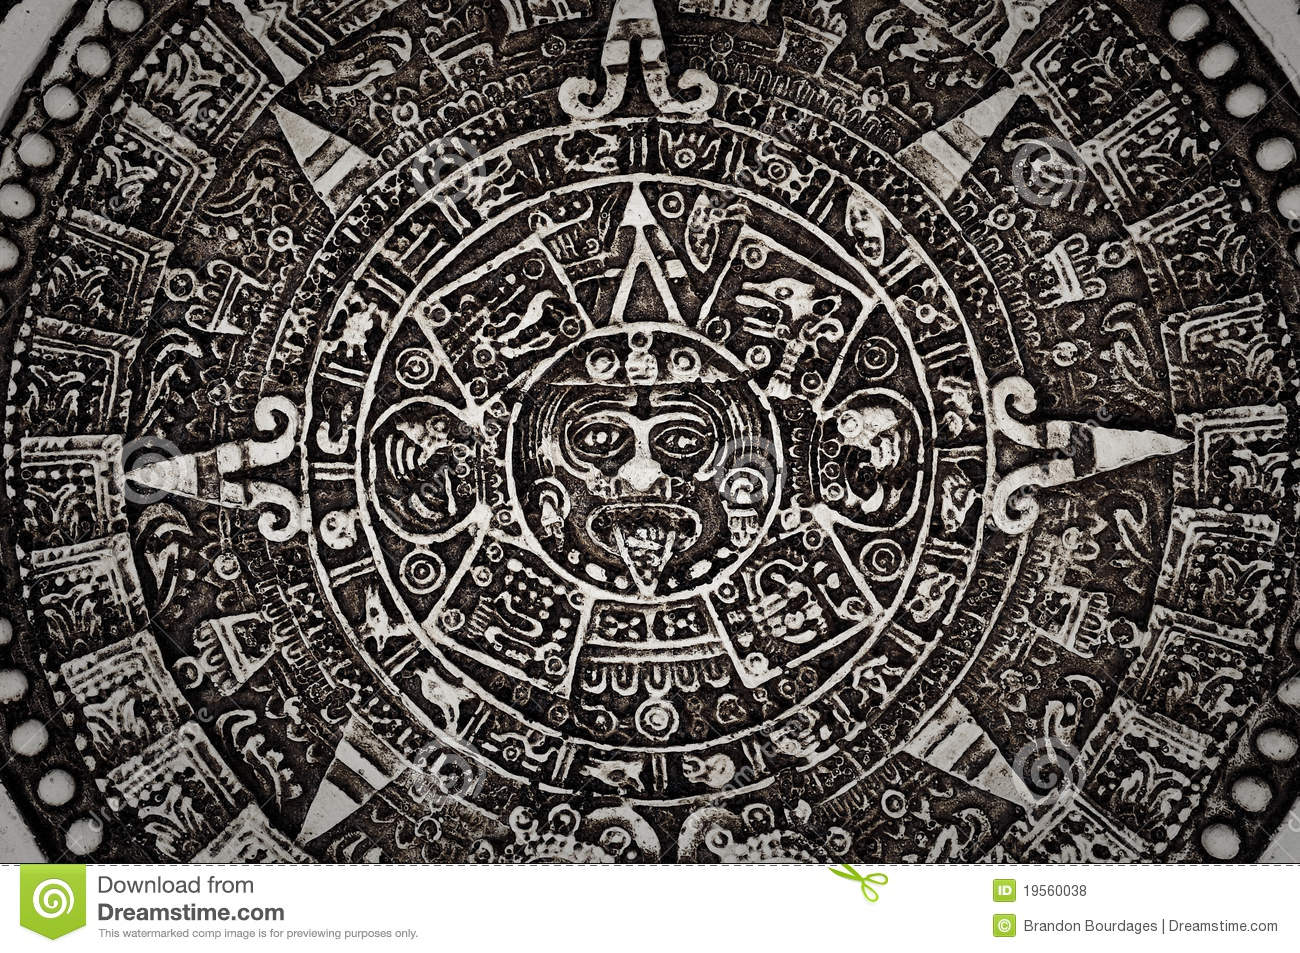 Ancient Mayan Calendar Images & Pictures - Becuo